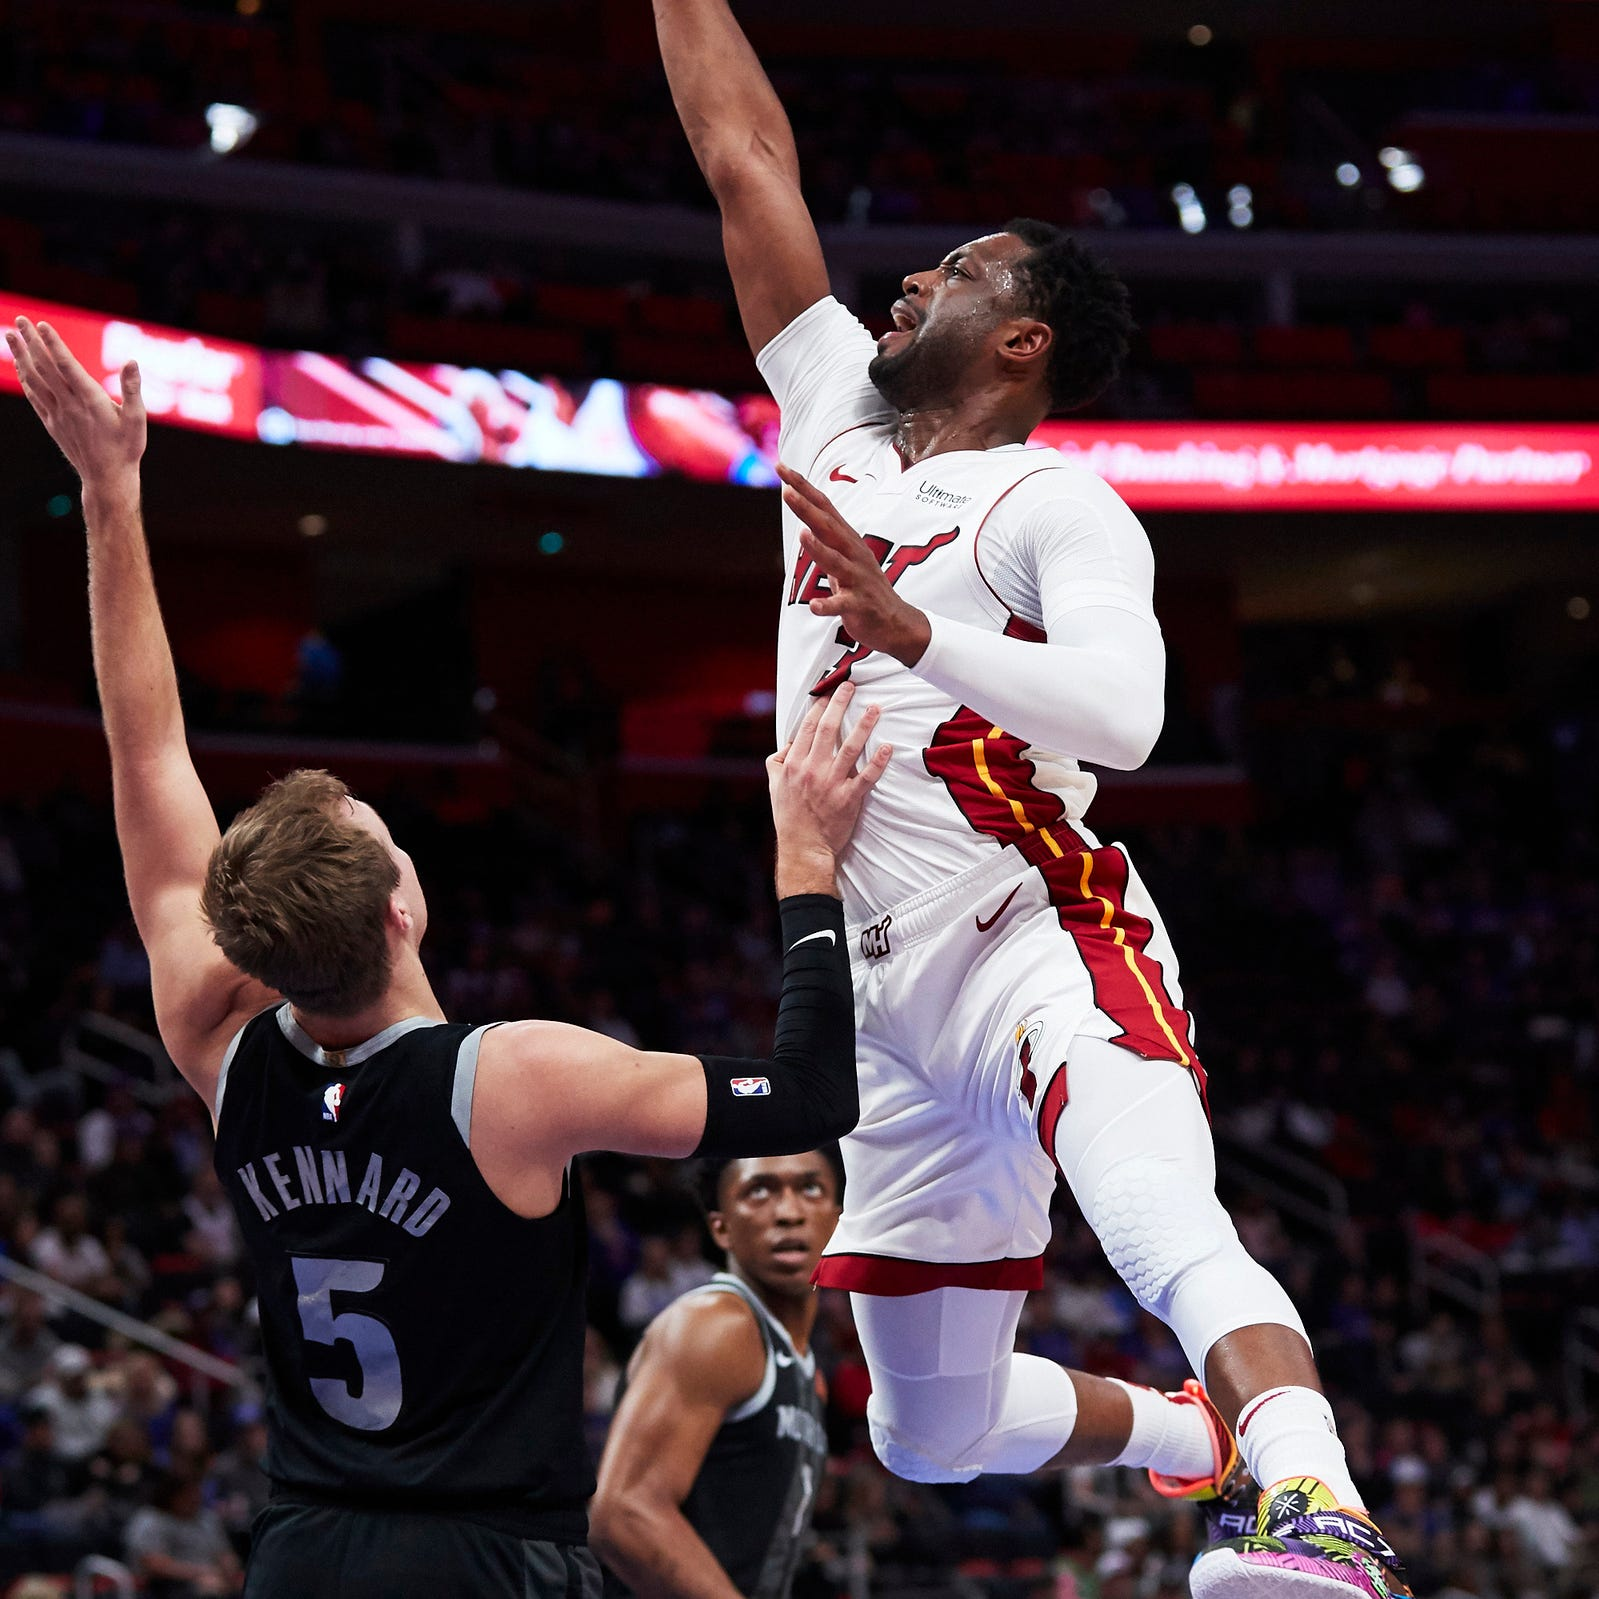 Detroit Pistons fend off Heat, 98-93, in Dwyane Wade's final visit